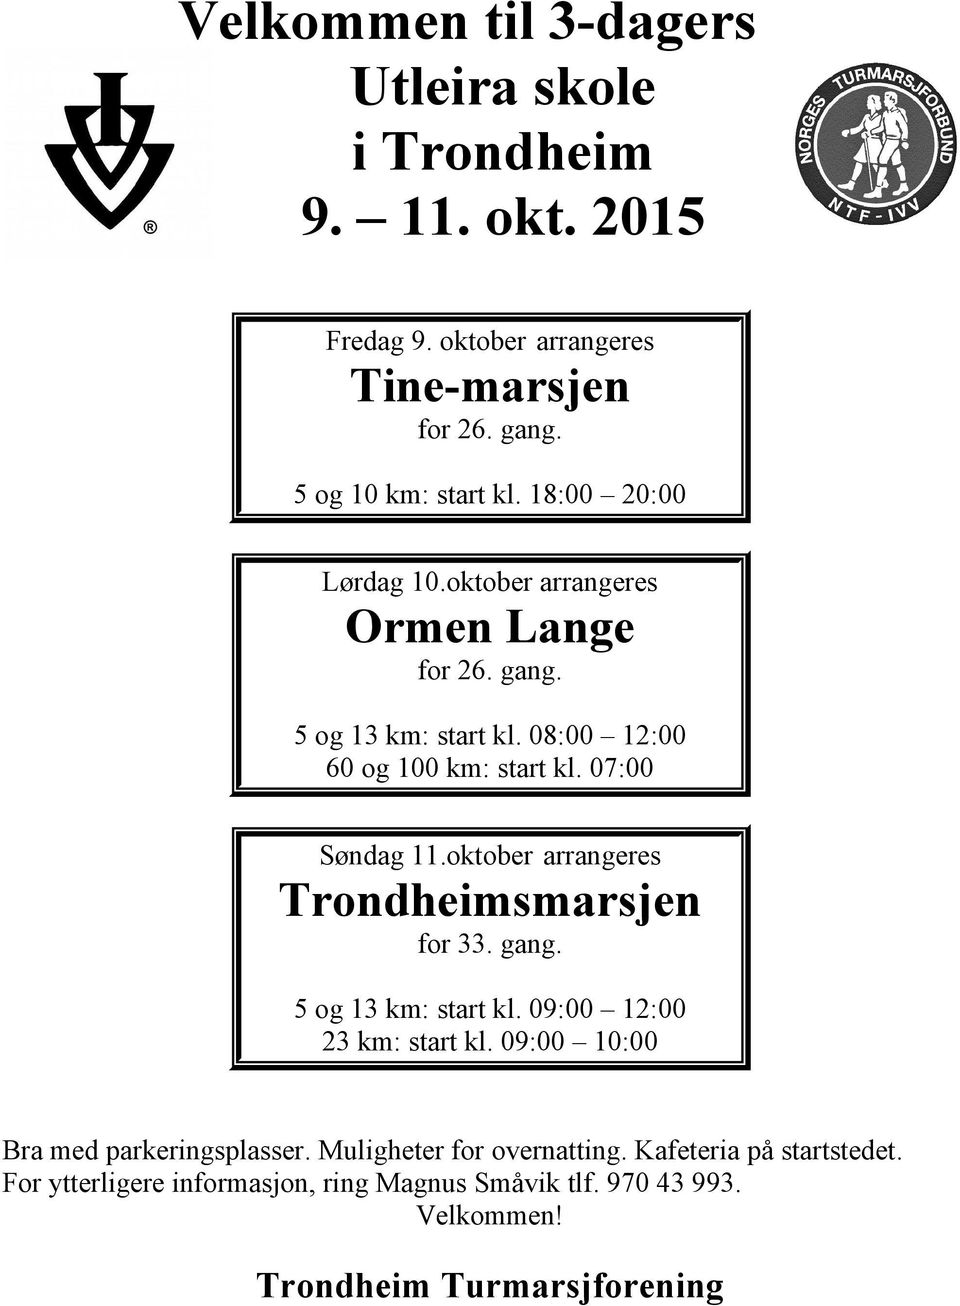 07:00 Søndag 11.oktober arrangeres Trondheimsmarsjen for 33. gang. 5 og 13 km: start kl. 09:00 12:00 23 km: start kl.